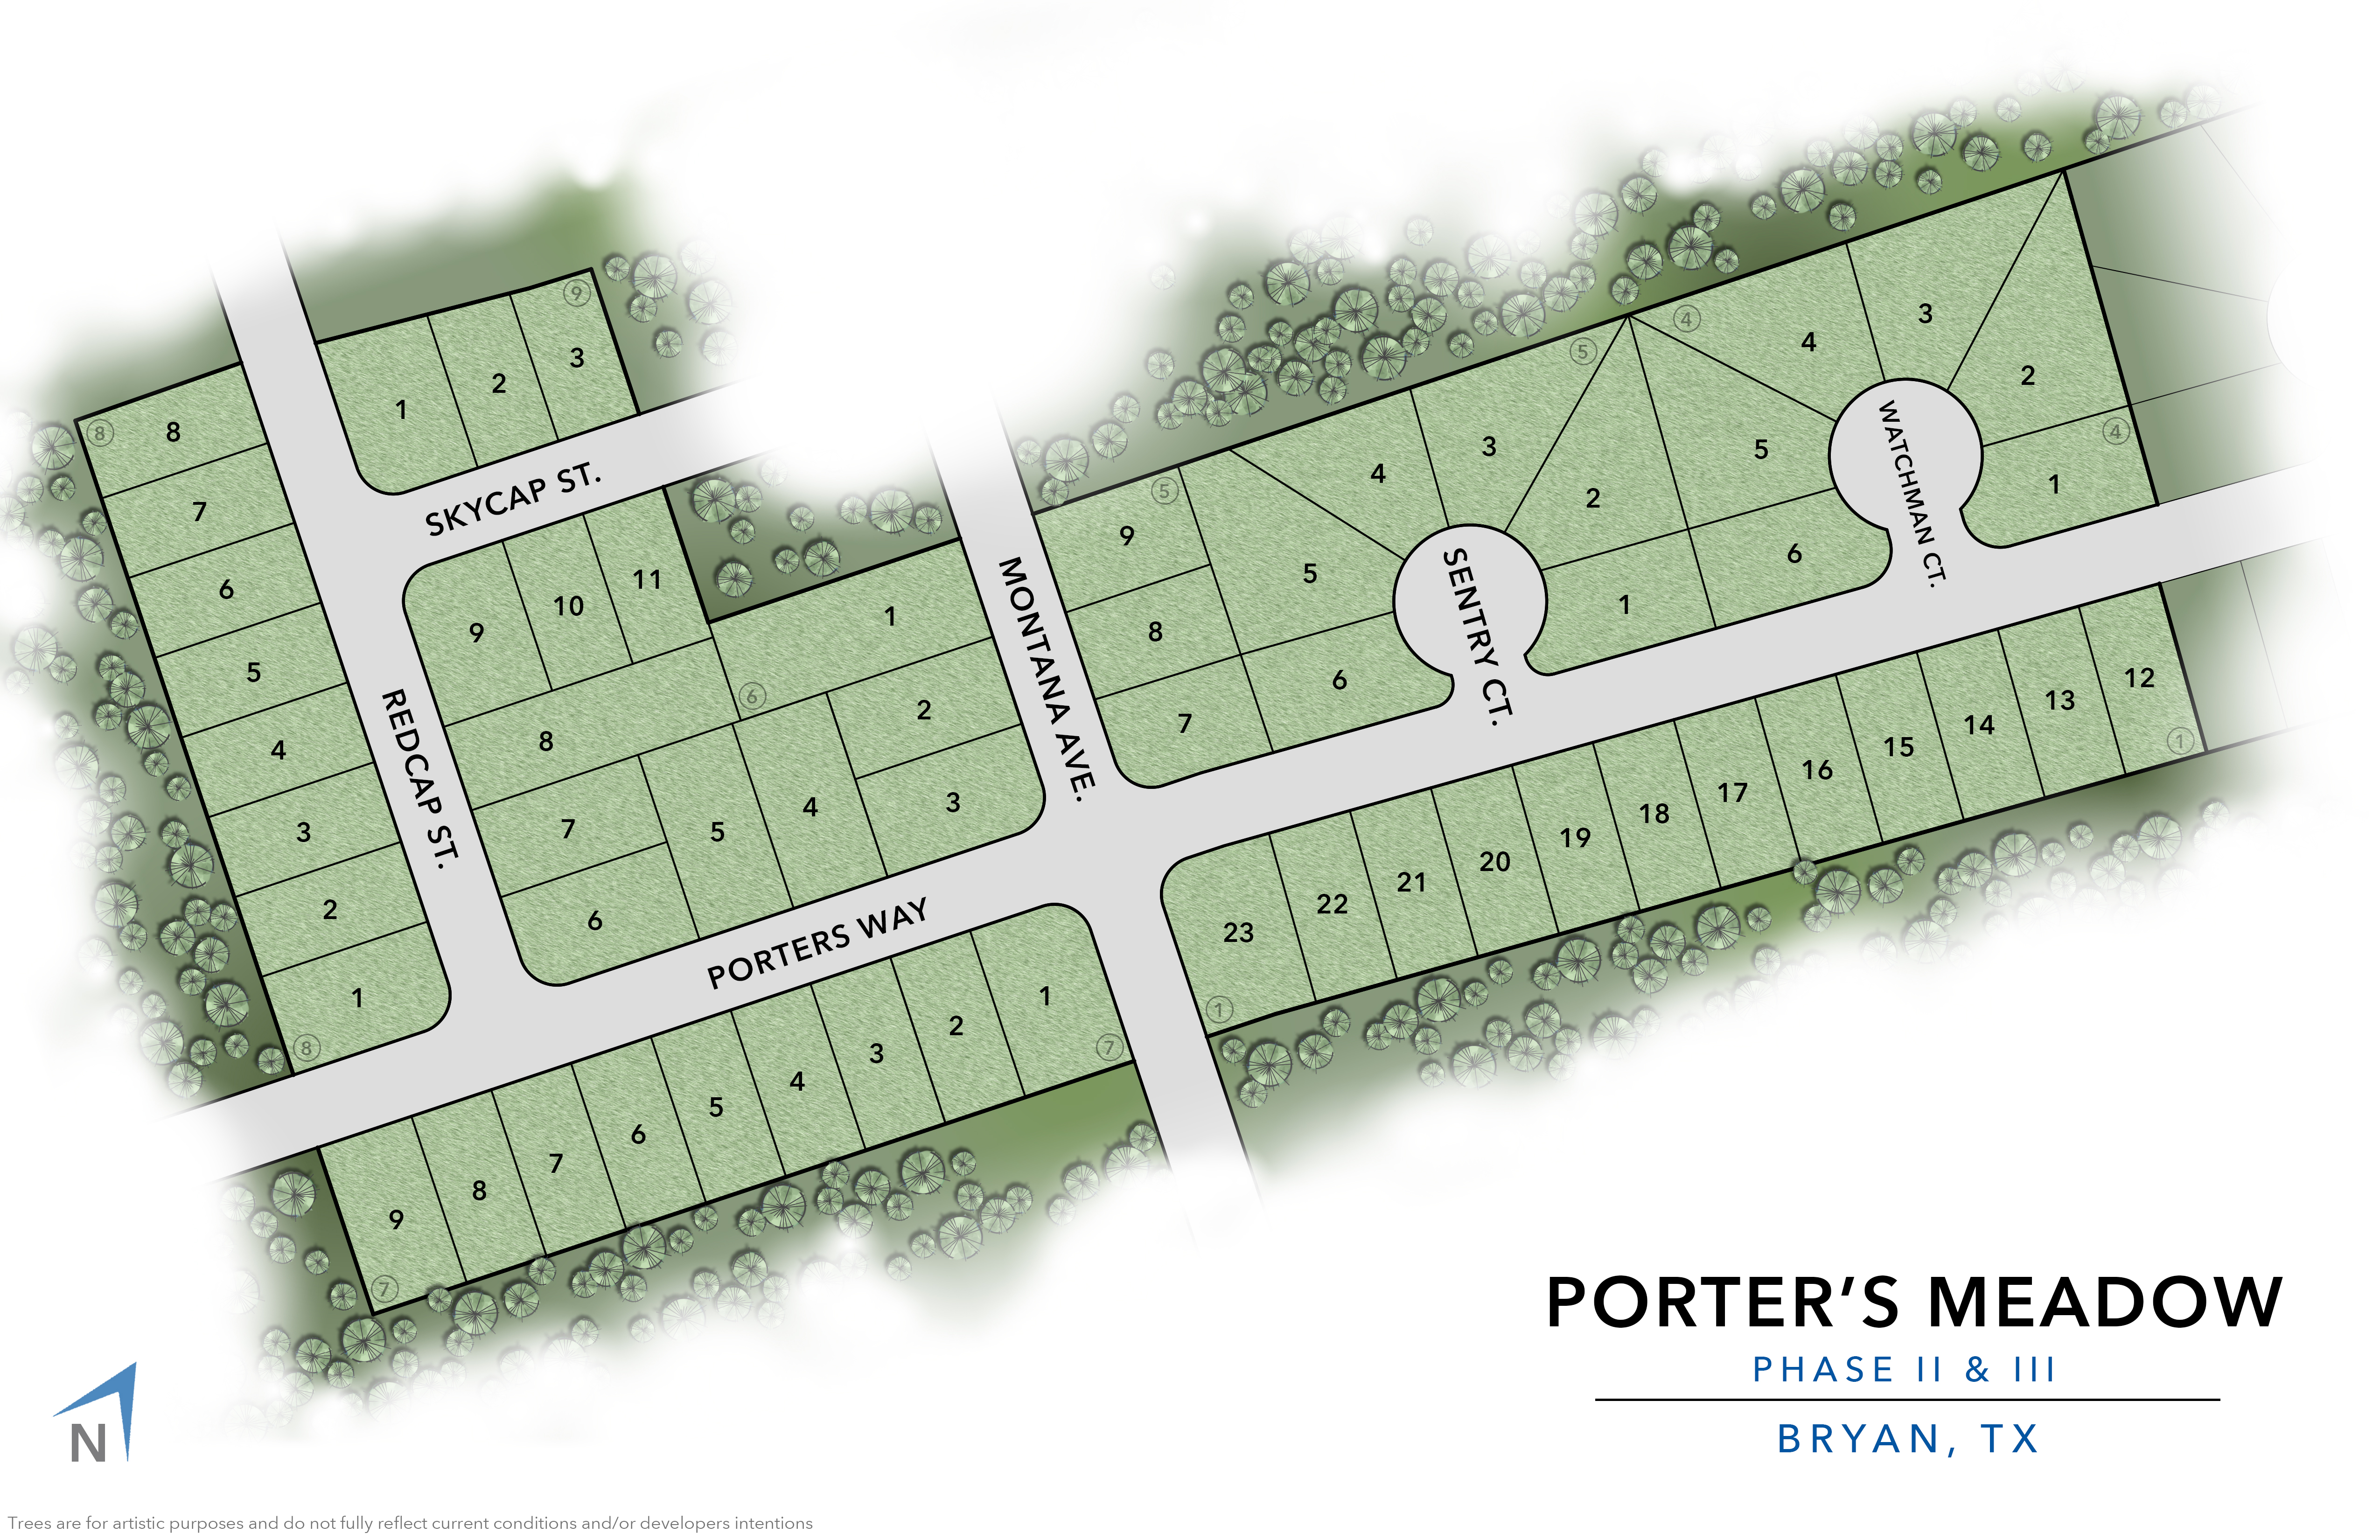 Bryan, TX Porter's Meadow New Homes from Stylecraft Builders